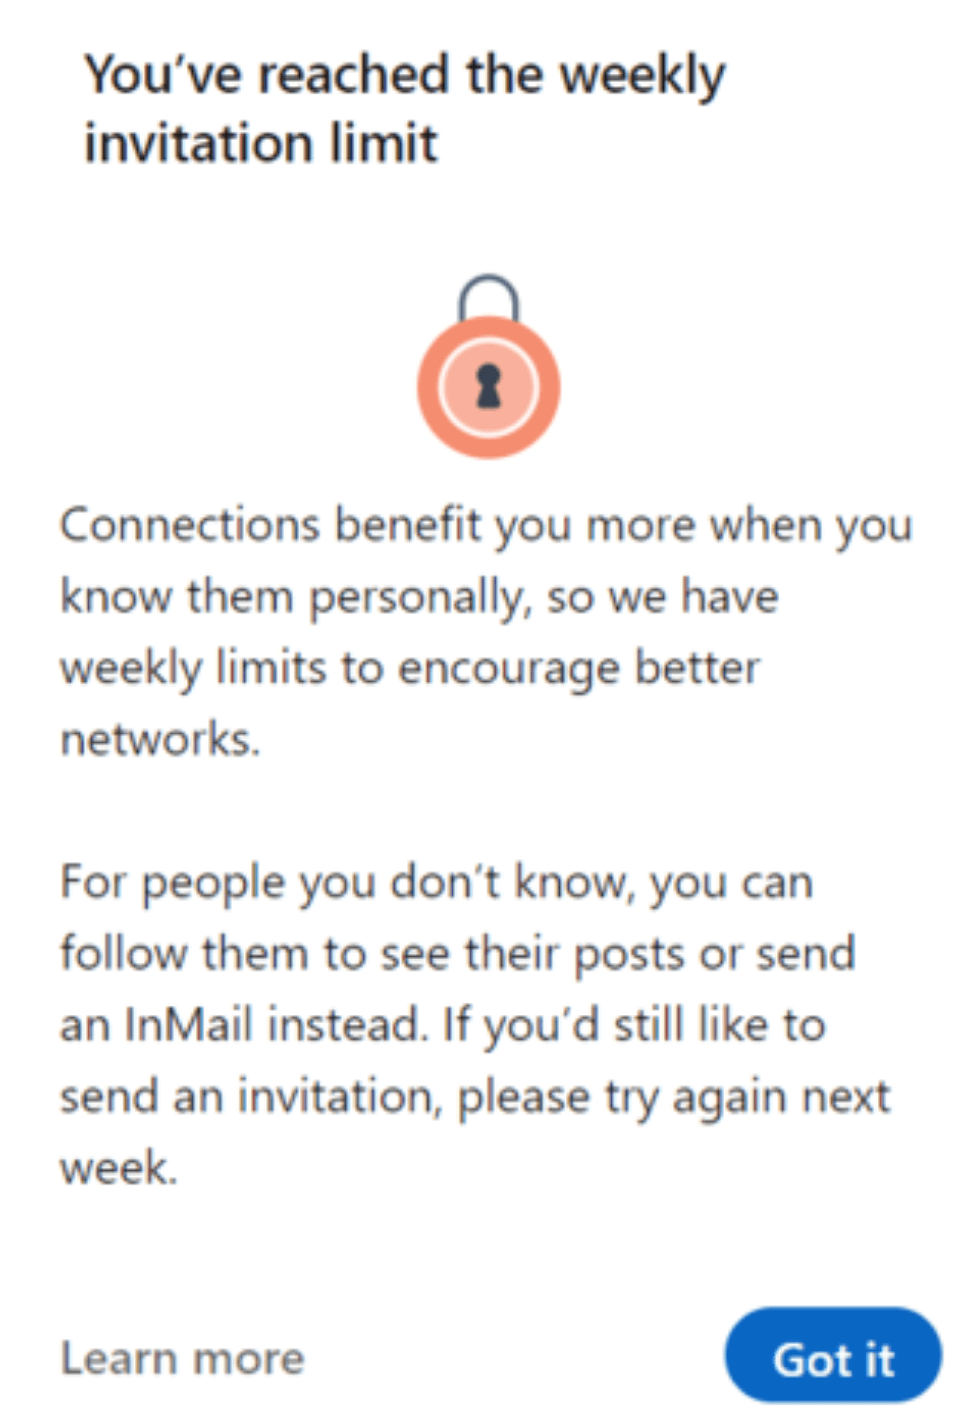 You've reached the weekly invitation limit - Linkedin Limits